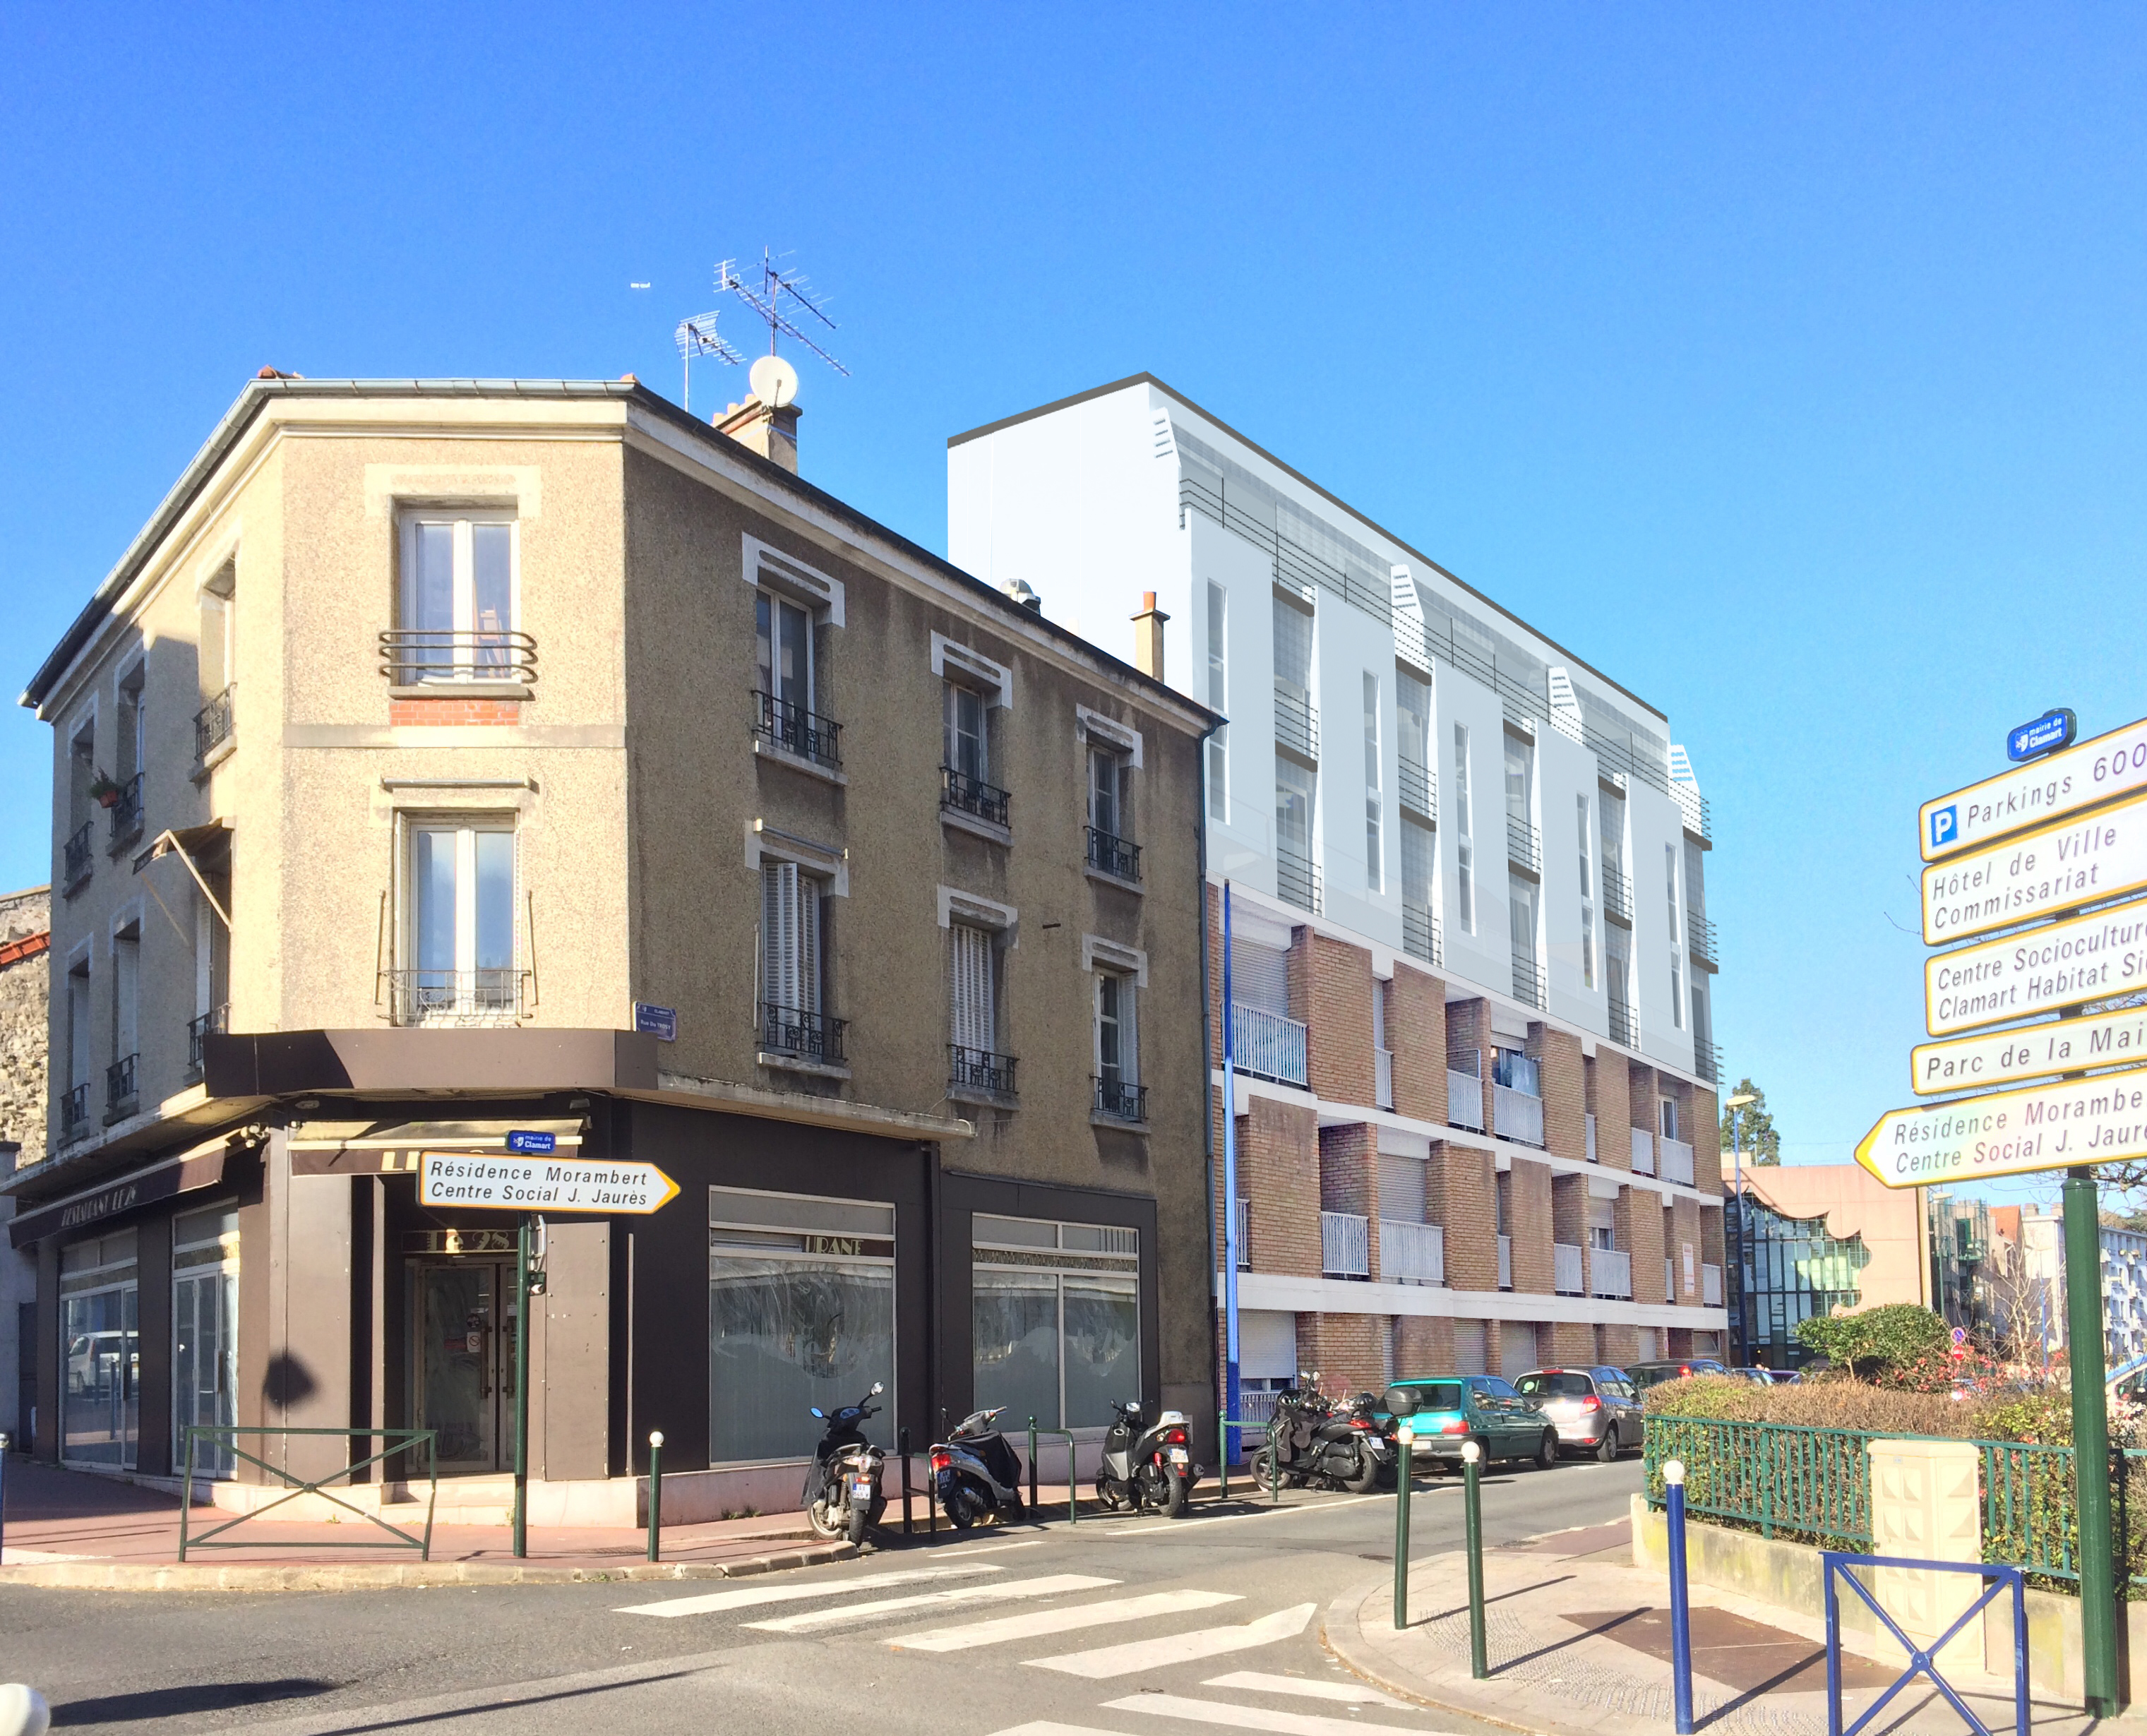 appartements en surélévation à Clamart